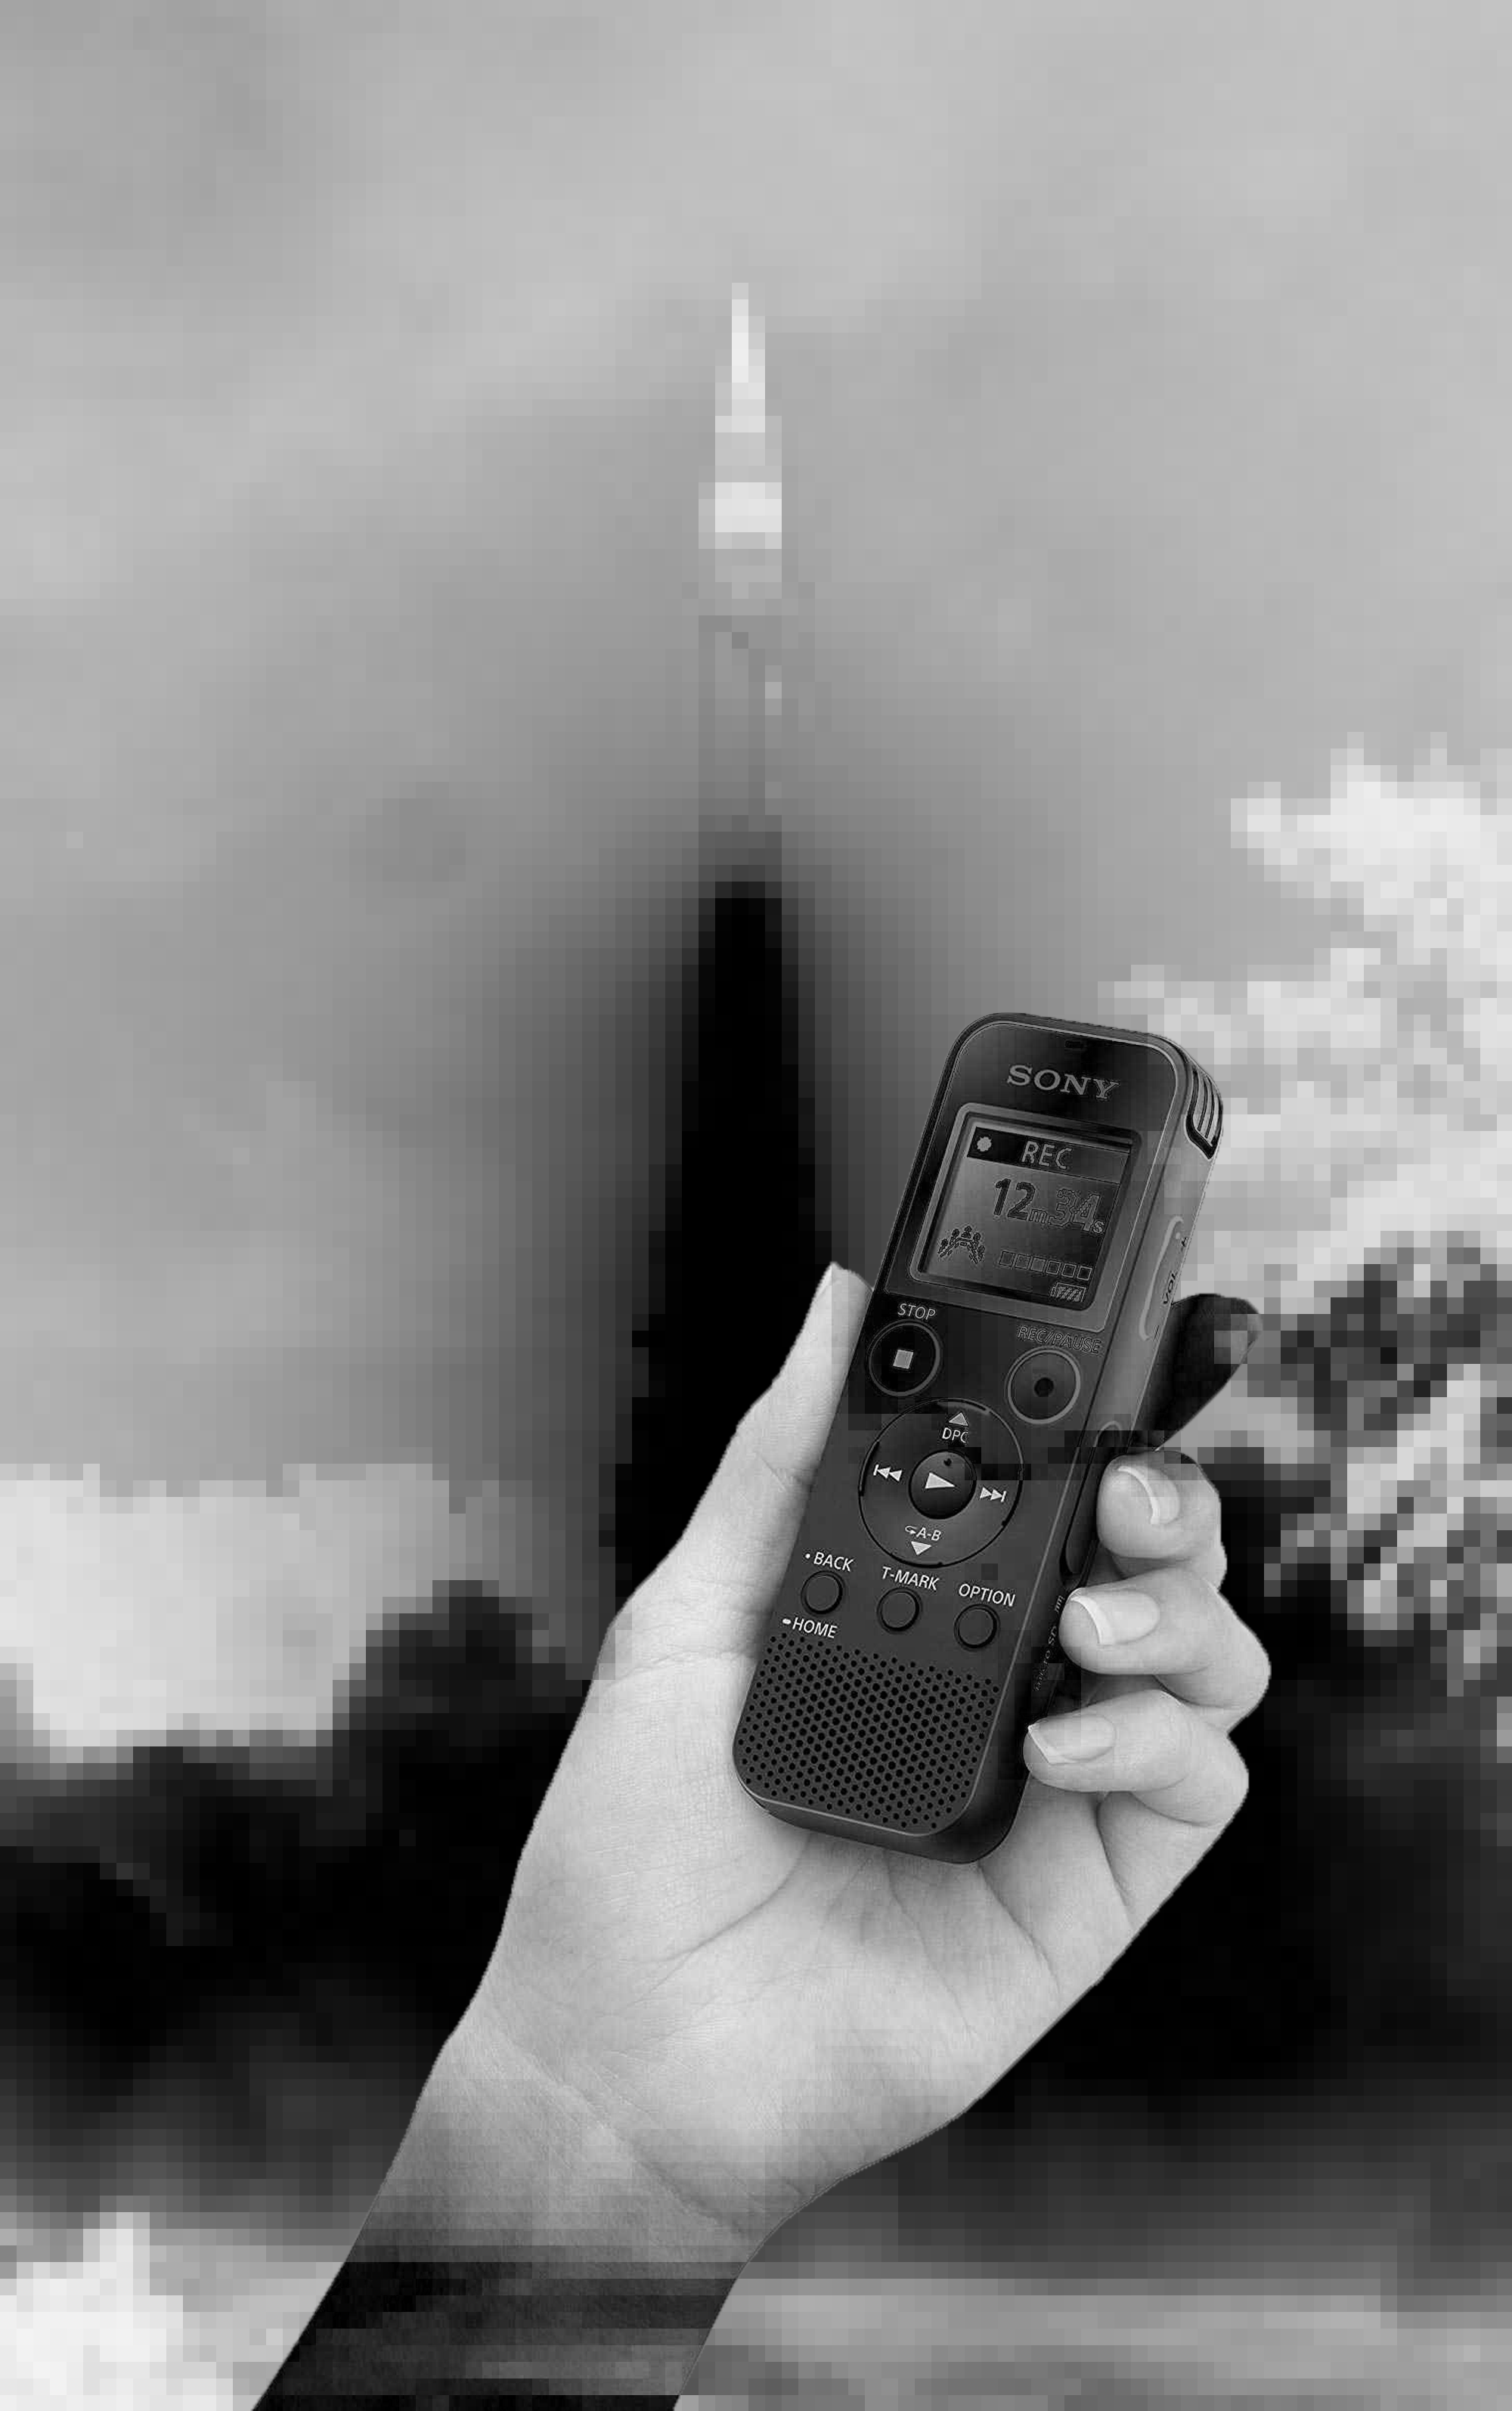 You are currently viewing REVIEW OF THE SONY ICD-PX470 STEREO DIGITAL VOICE RECORDER by Calvin Westra